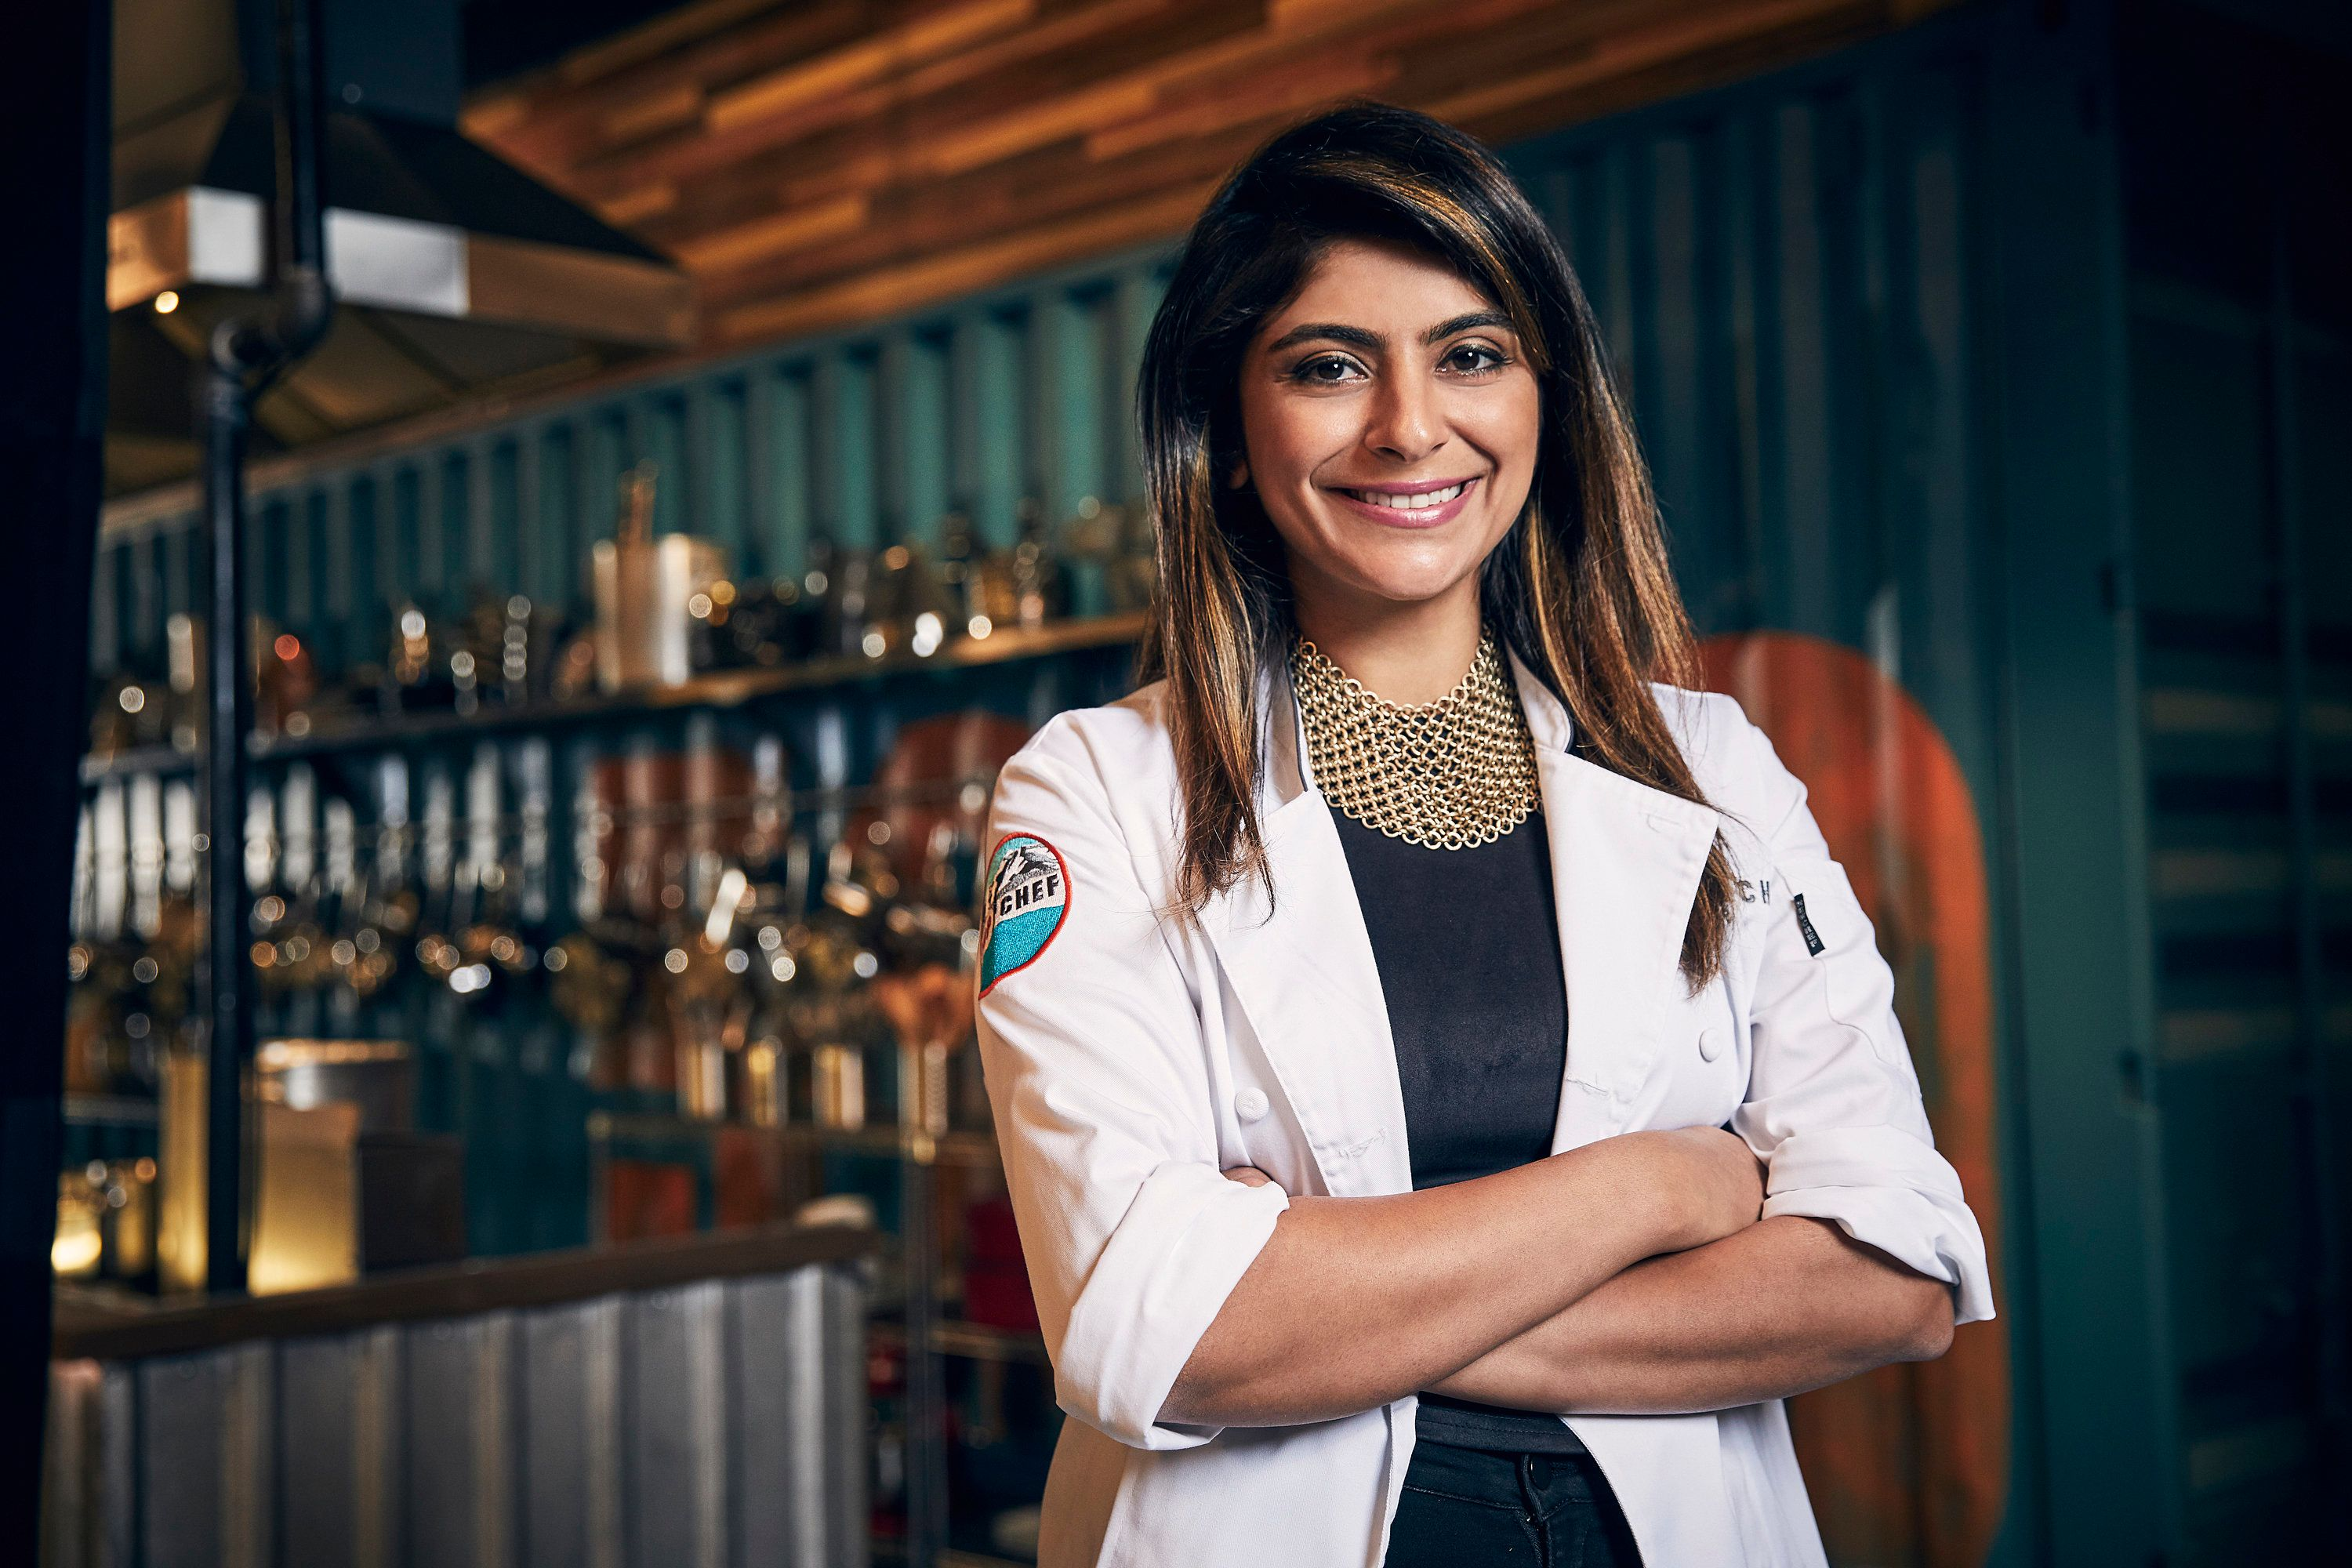 TOP CHEF -- Season:15 -- Pictured: Fatima Ali -- (Photo by: Tommy Garcia/Bravo/NBCU Photo Bank via Getty Images)